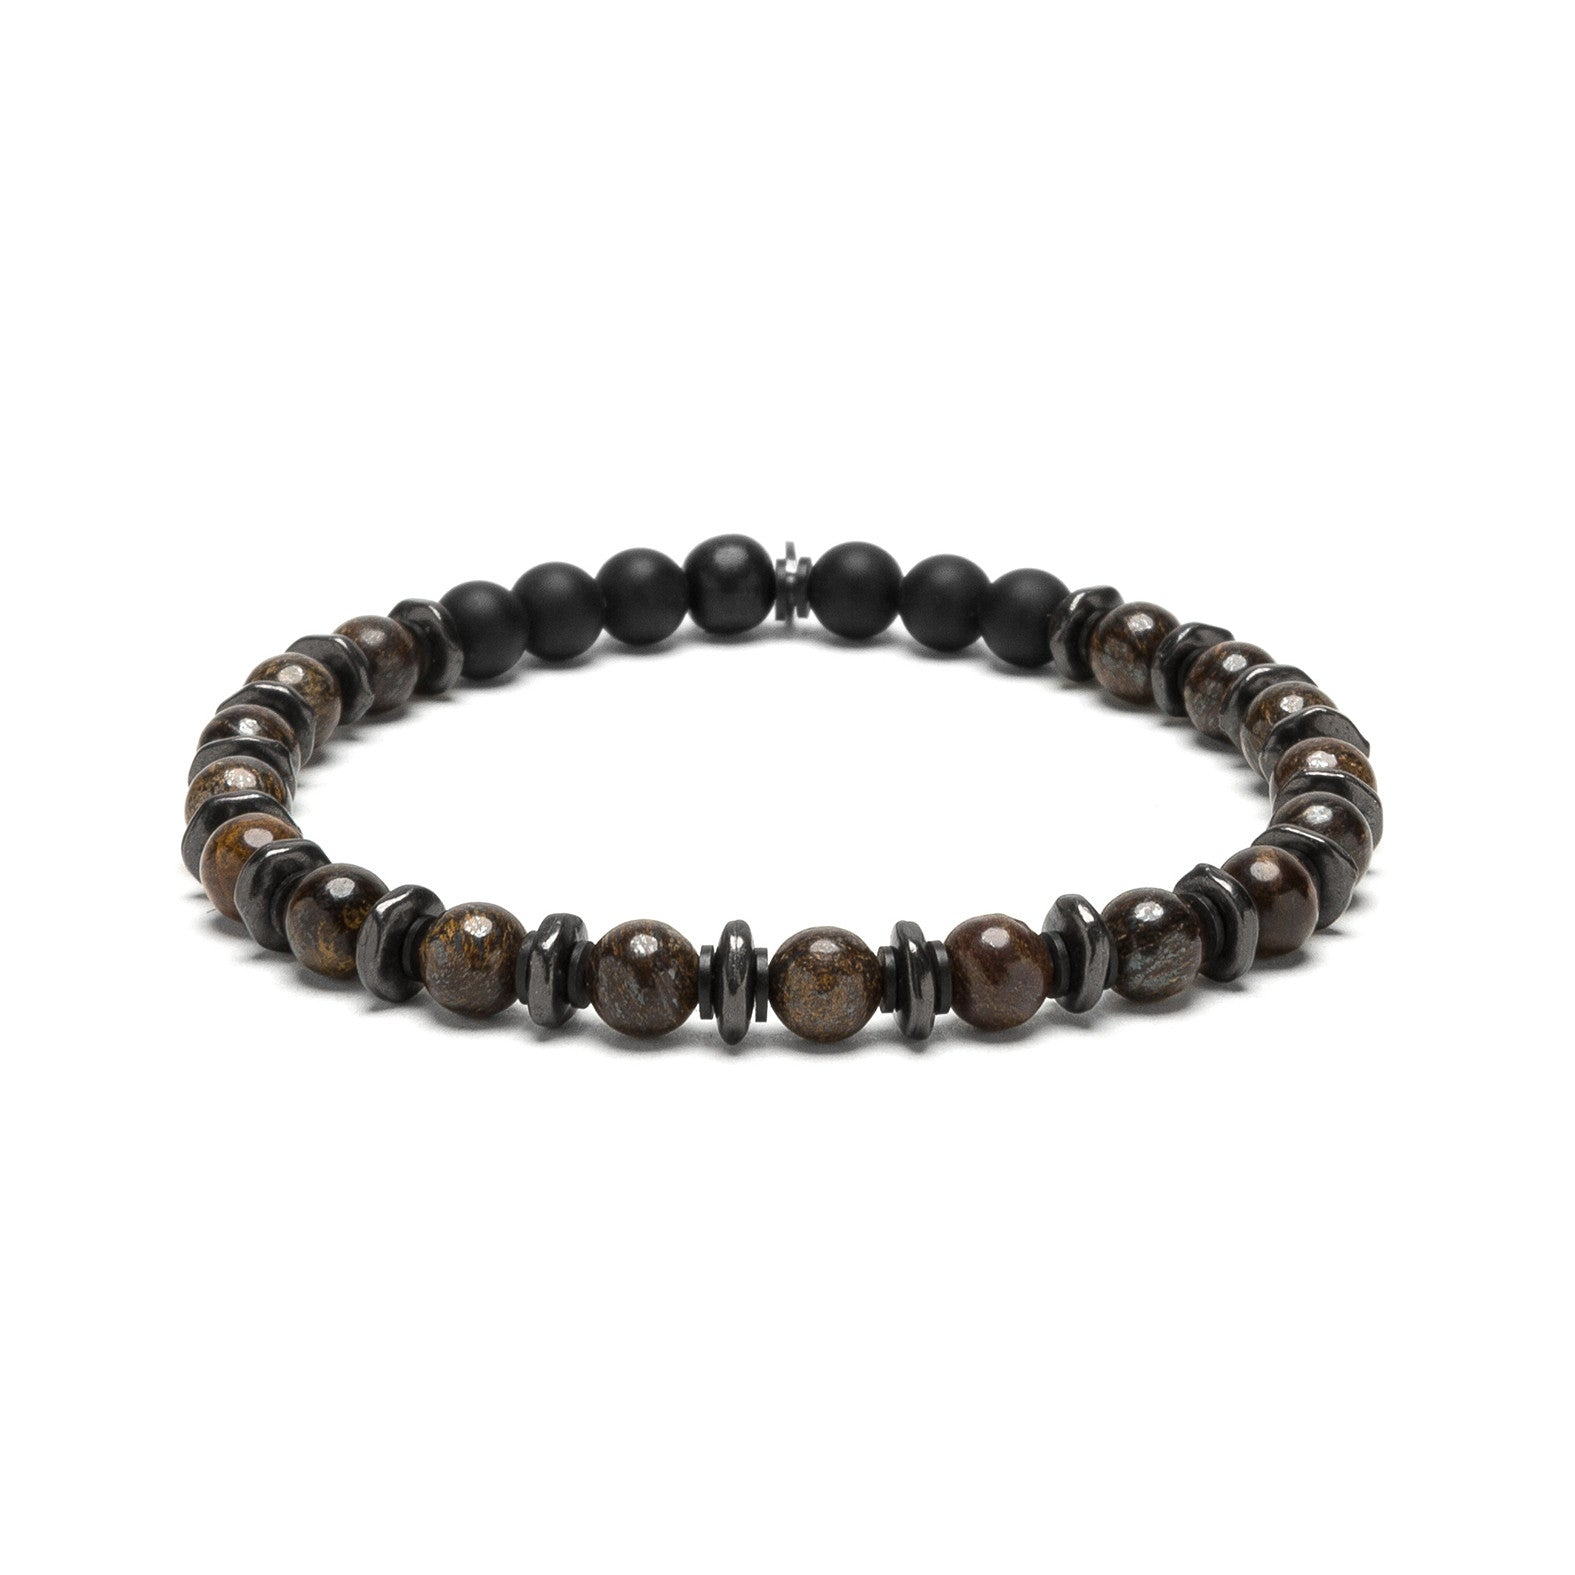 Stone and Gunmetal Sequence Bracelets